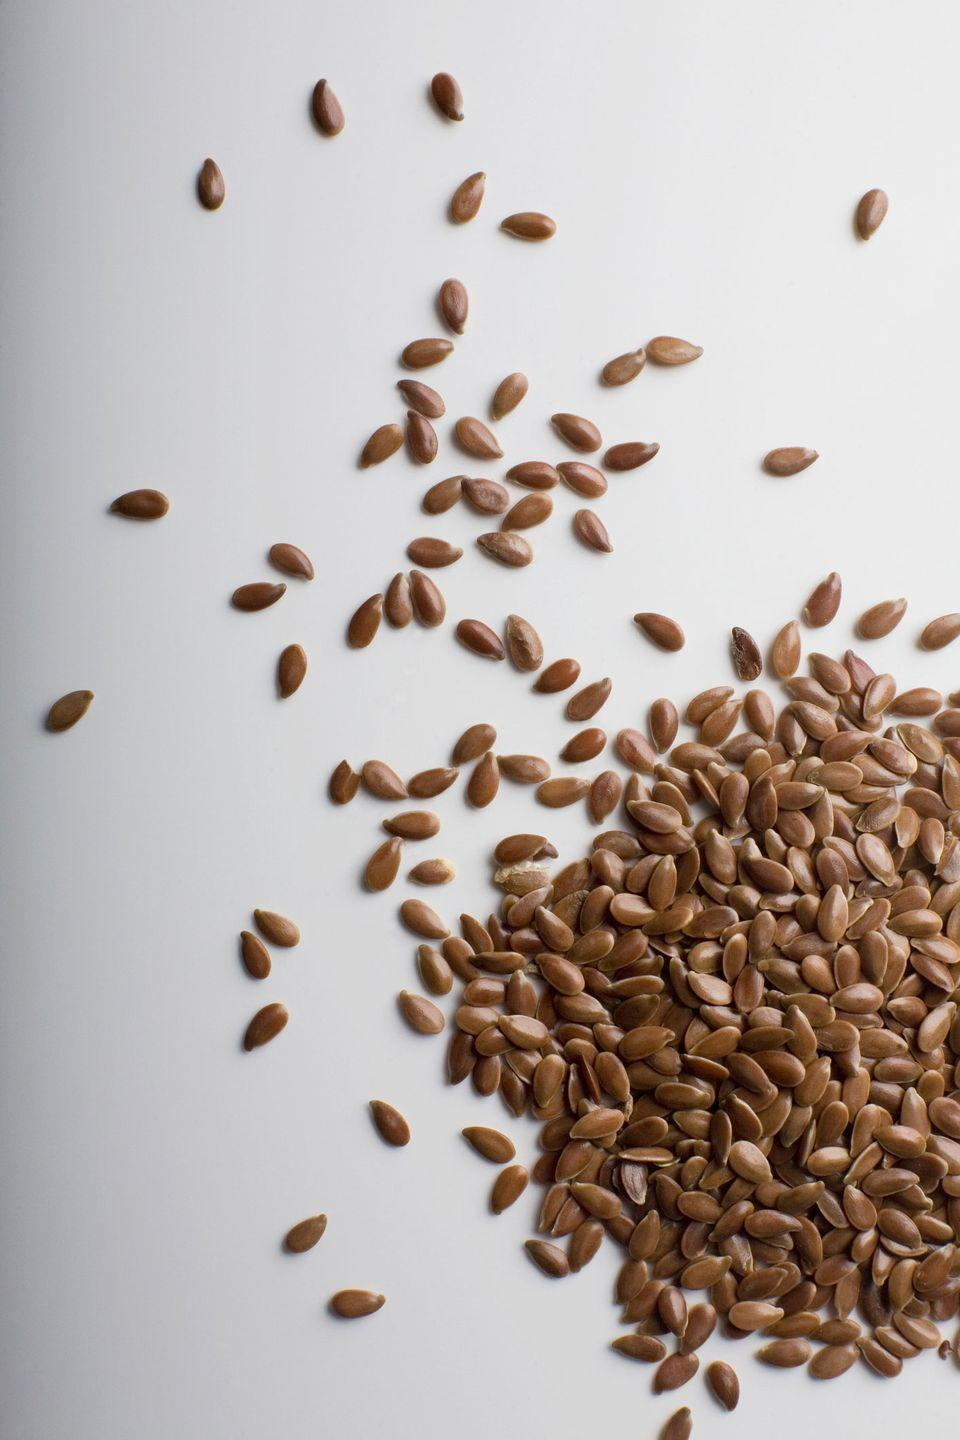 """<p>Flaxseed is loaded with plant omega-3s, which are good for your heart health, according to <a href=""""https://www.webmd.com/diet/features/benefits-of-flaxseed#1"""" rel=""""nofollow noopener"""" target=""""_blank"""" data-ylk=""""slk:WebMD"""" class=""""link rapid-noclick-resp"""">WebMD</a>. Store ground flaxseed in your refrigerator and sprinkle on yogurt, cold cereal, oatmeal, or avocado toast.</p><p><strong>Recipe to try:</strong> <a href=""""https://www.womansday.com/food-recipes/food-drinks/recipes/a39483/pineapple-ginger-walnut-oatmeal-recipe-clv0314/"""" rel=""""nofollow noopener"""" target=""""_blank"""" data-ylk=""""slk:Pineapple, Ginger, and Walnut Oatmeal"""" class=""""link rapid-noclick-resp"""">Pineapple, Ginger, and Walnut Oatmeal</a></p><p><strong>What you'll need</strong>: Flaxseed ($8, <a href=""""https://www.amazon.com/Spectrum-Essentials-Organic-Ground-Flaxseed/dp/B00DOKFLYI/?tag=syn-yahoo-20&ascsubtag=%5Bartid%7C10070.g.2211%5Bsrc%7Cyahoo-us"""" rel=""""nofollow noopener"""" target=""""_blank"""" data-ylk=""""slk:amazon.com"""" class=""""link rapid-noclick-resp"""">amazon.com</a>)</p>"""